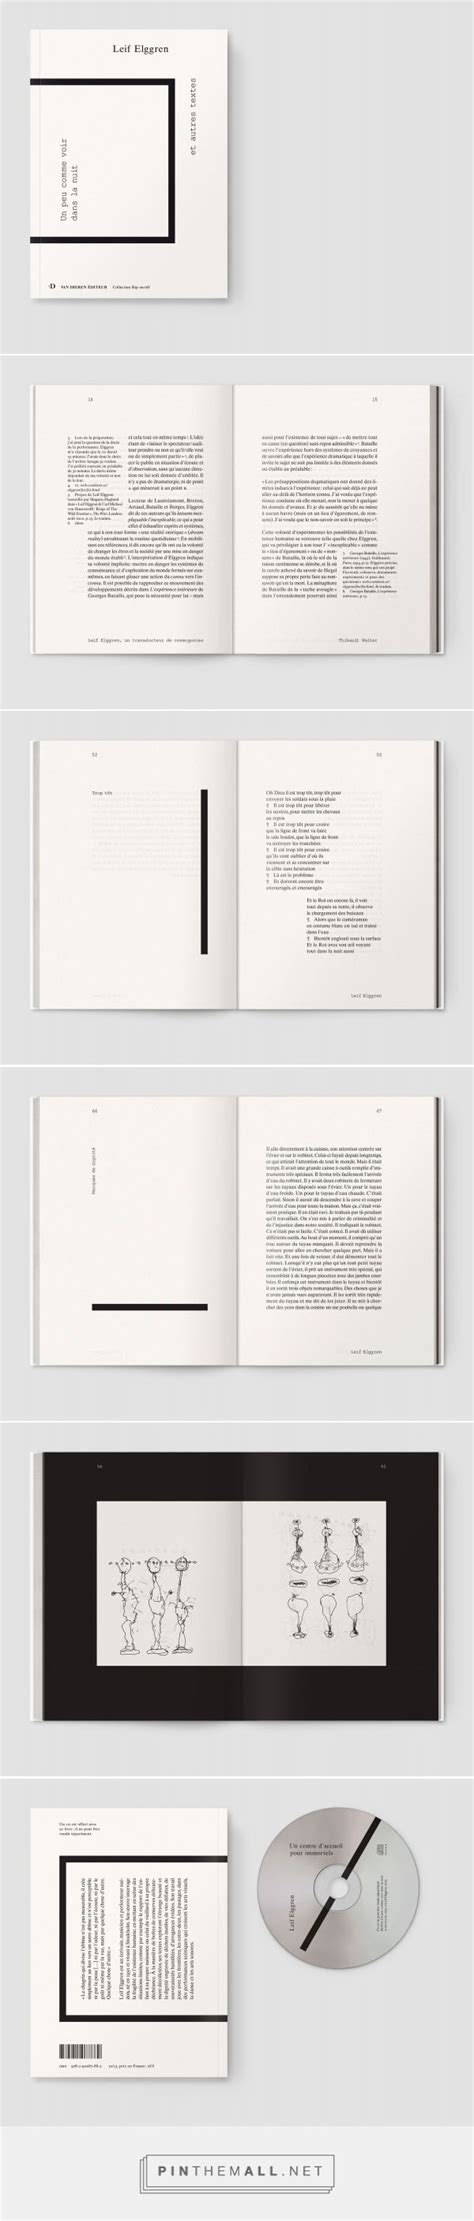 layout design pdf books 25 trending book layouts ideas on pinterest editorial